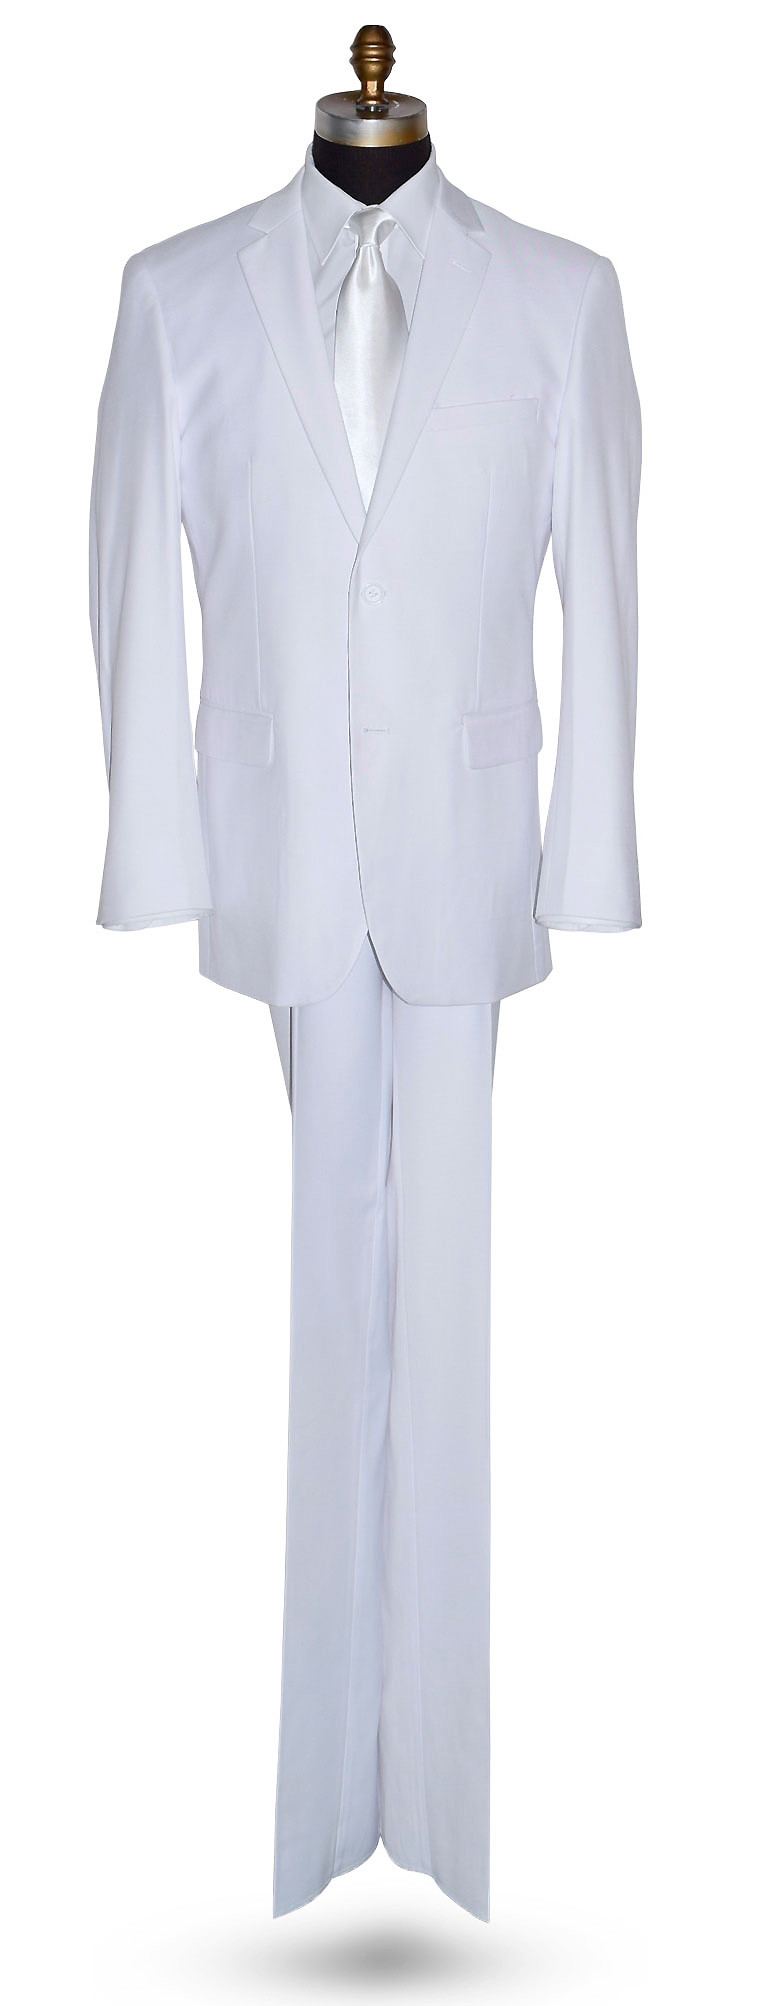 White 3 Piece Men's Suit -Coat, Pants and Vest